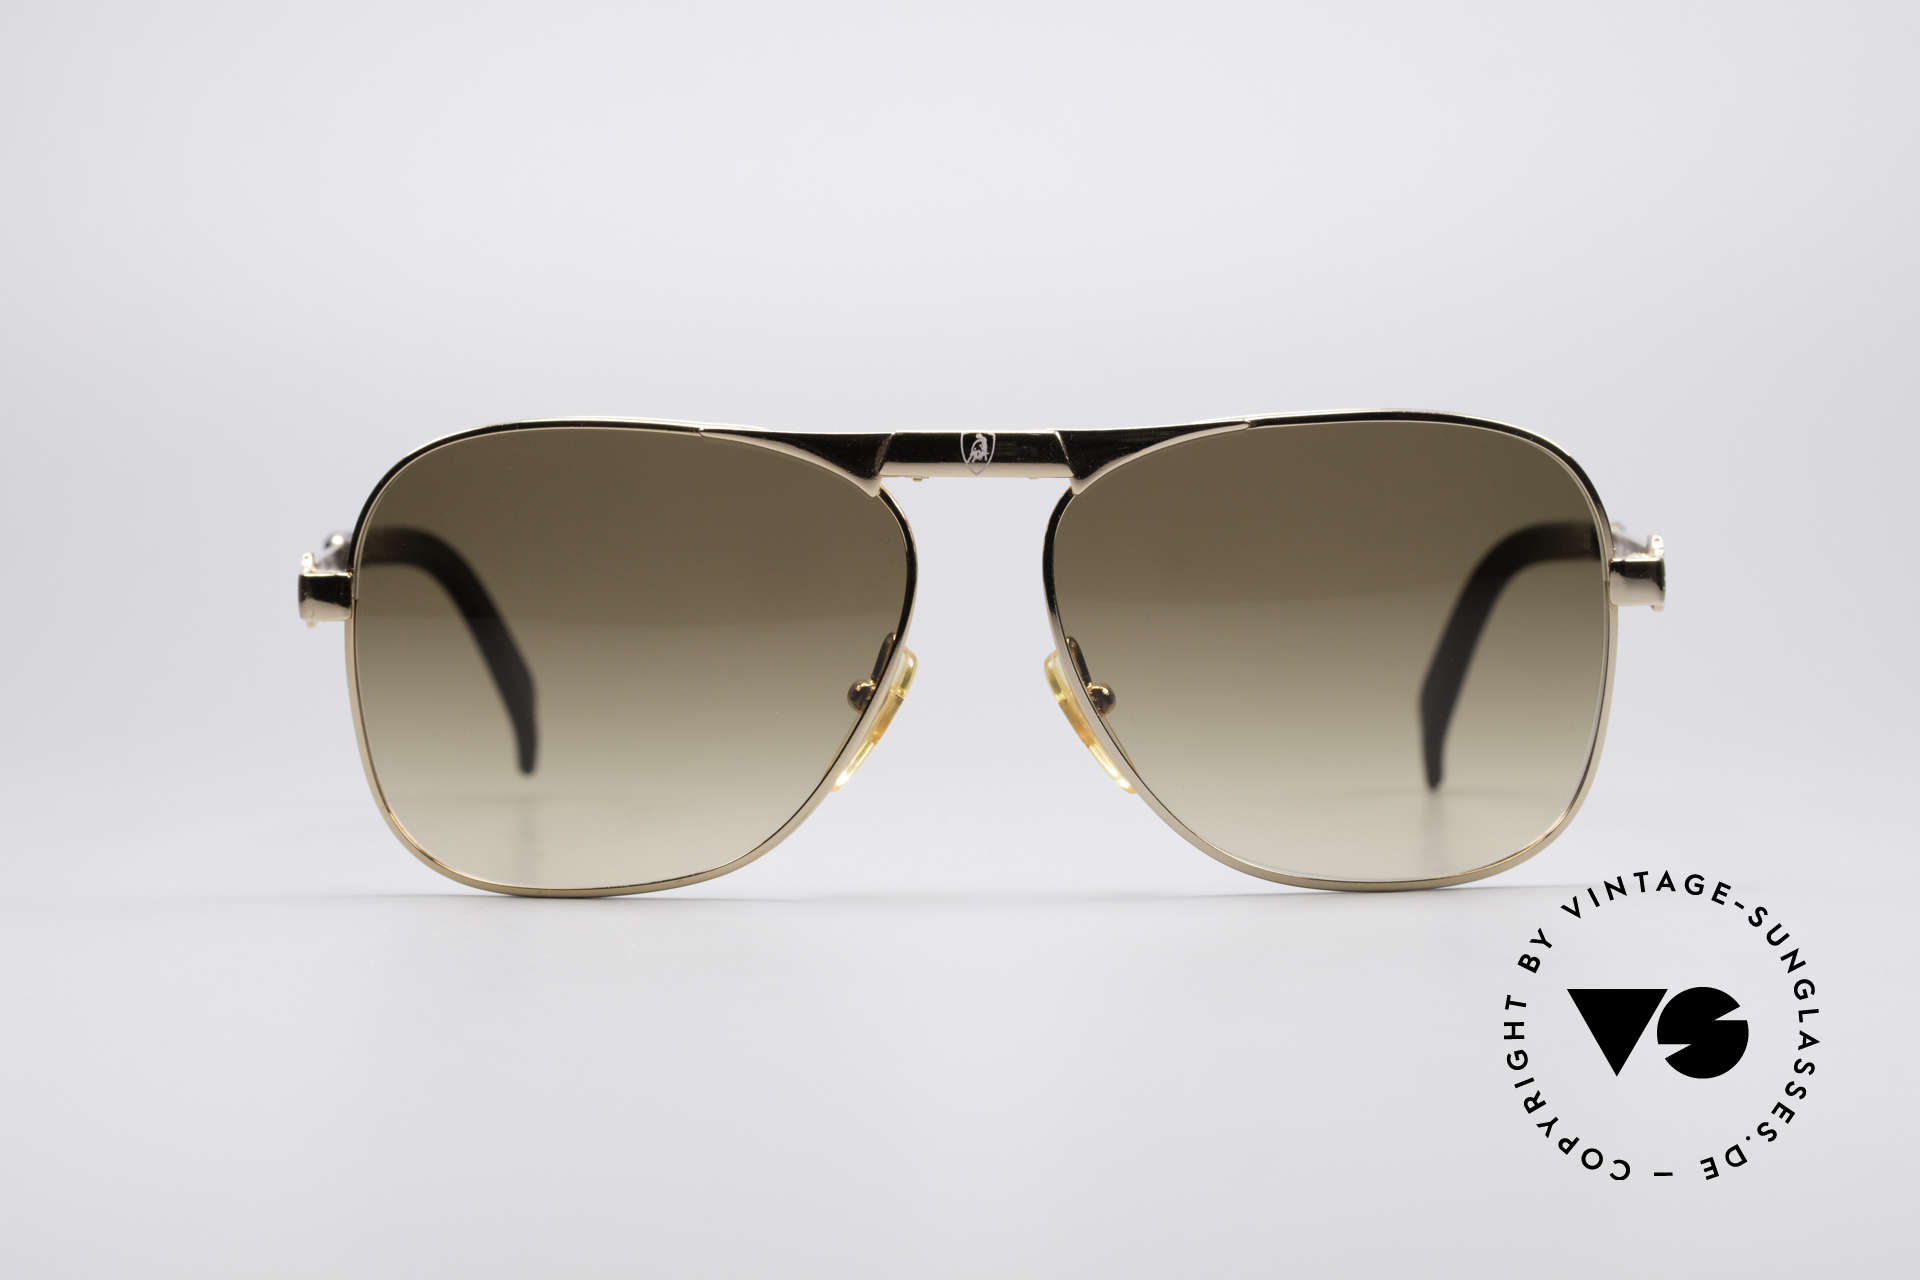 Lamborghini LT50/P 80's Folding Sunglasses, the Lamborghini heir is well-known for luxury accessories, Made for Men